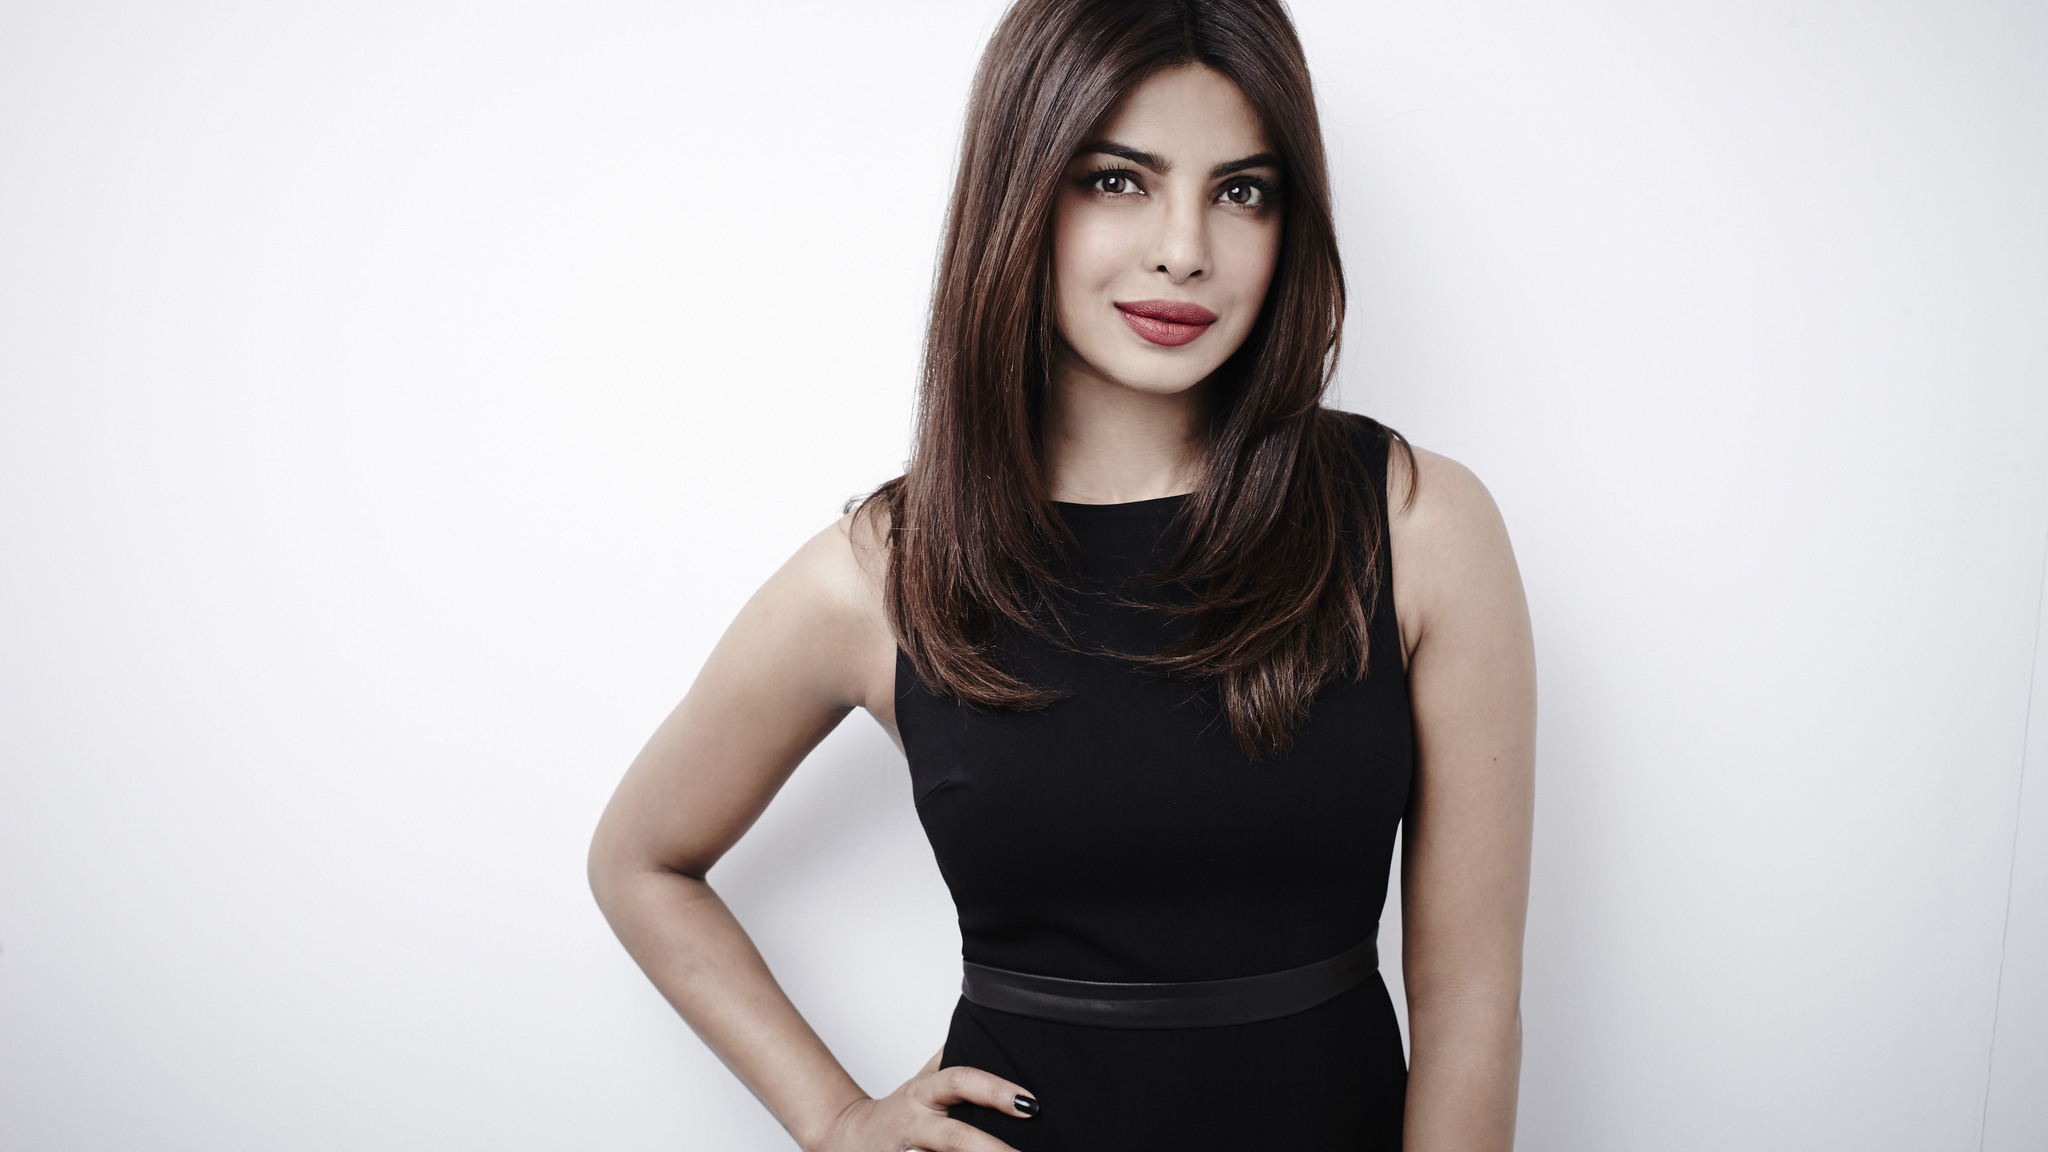 2048X1152 Priyanka Chopra 5K 2048X1152 Resolution Hd 4K -2841